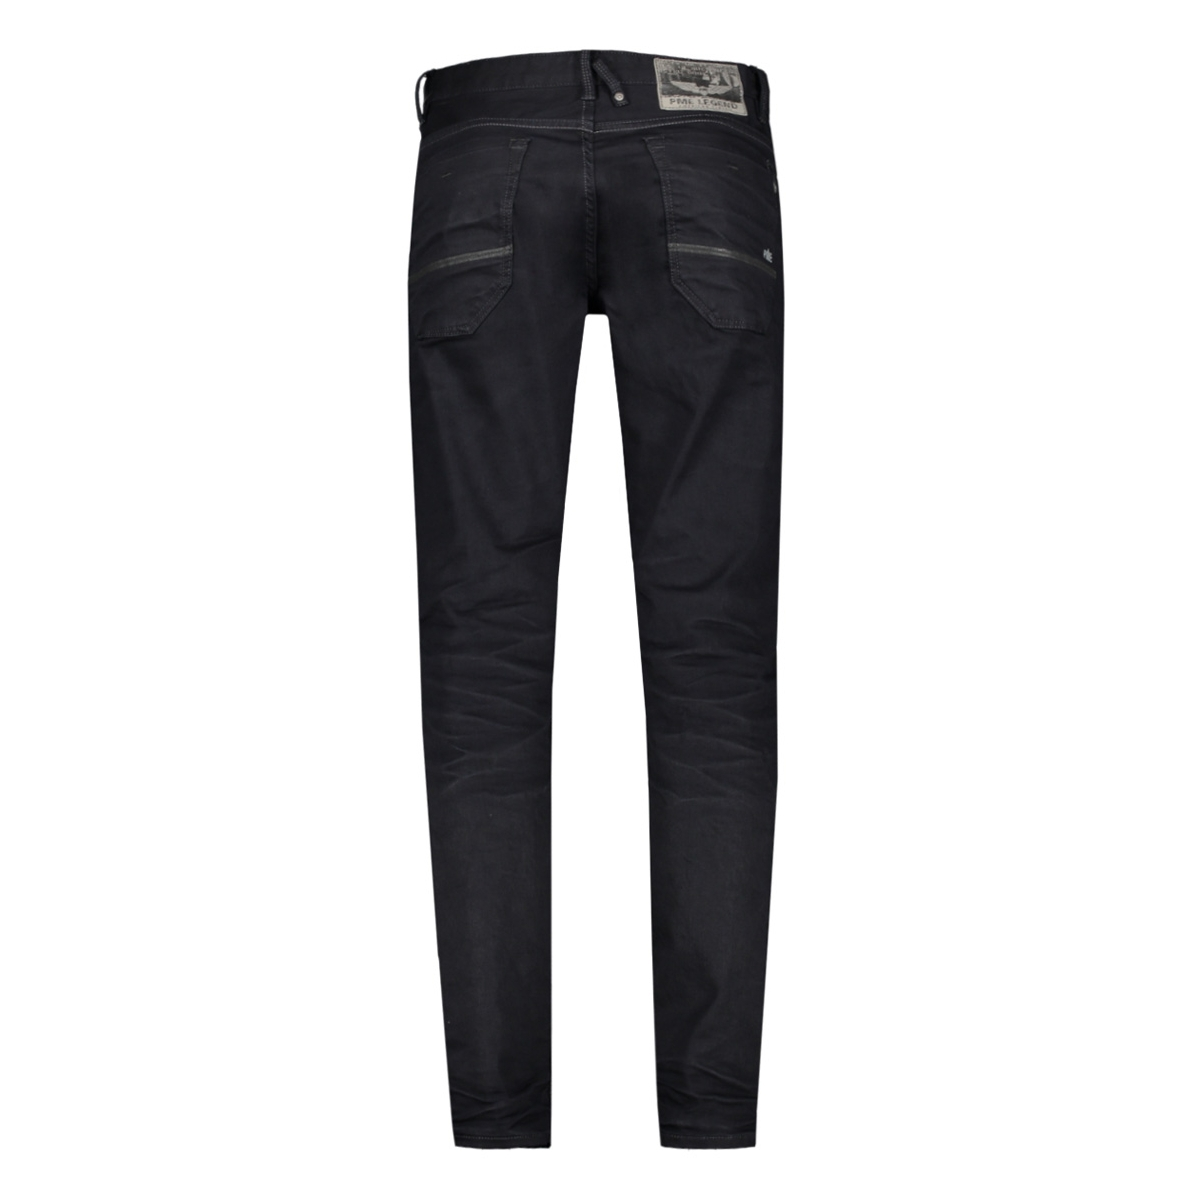 skymaster coated ptr650 pme legend jeans cid